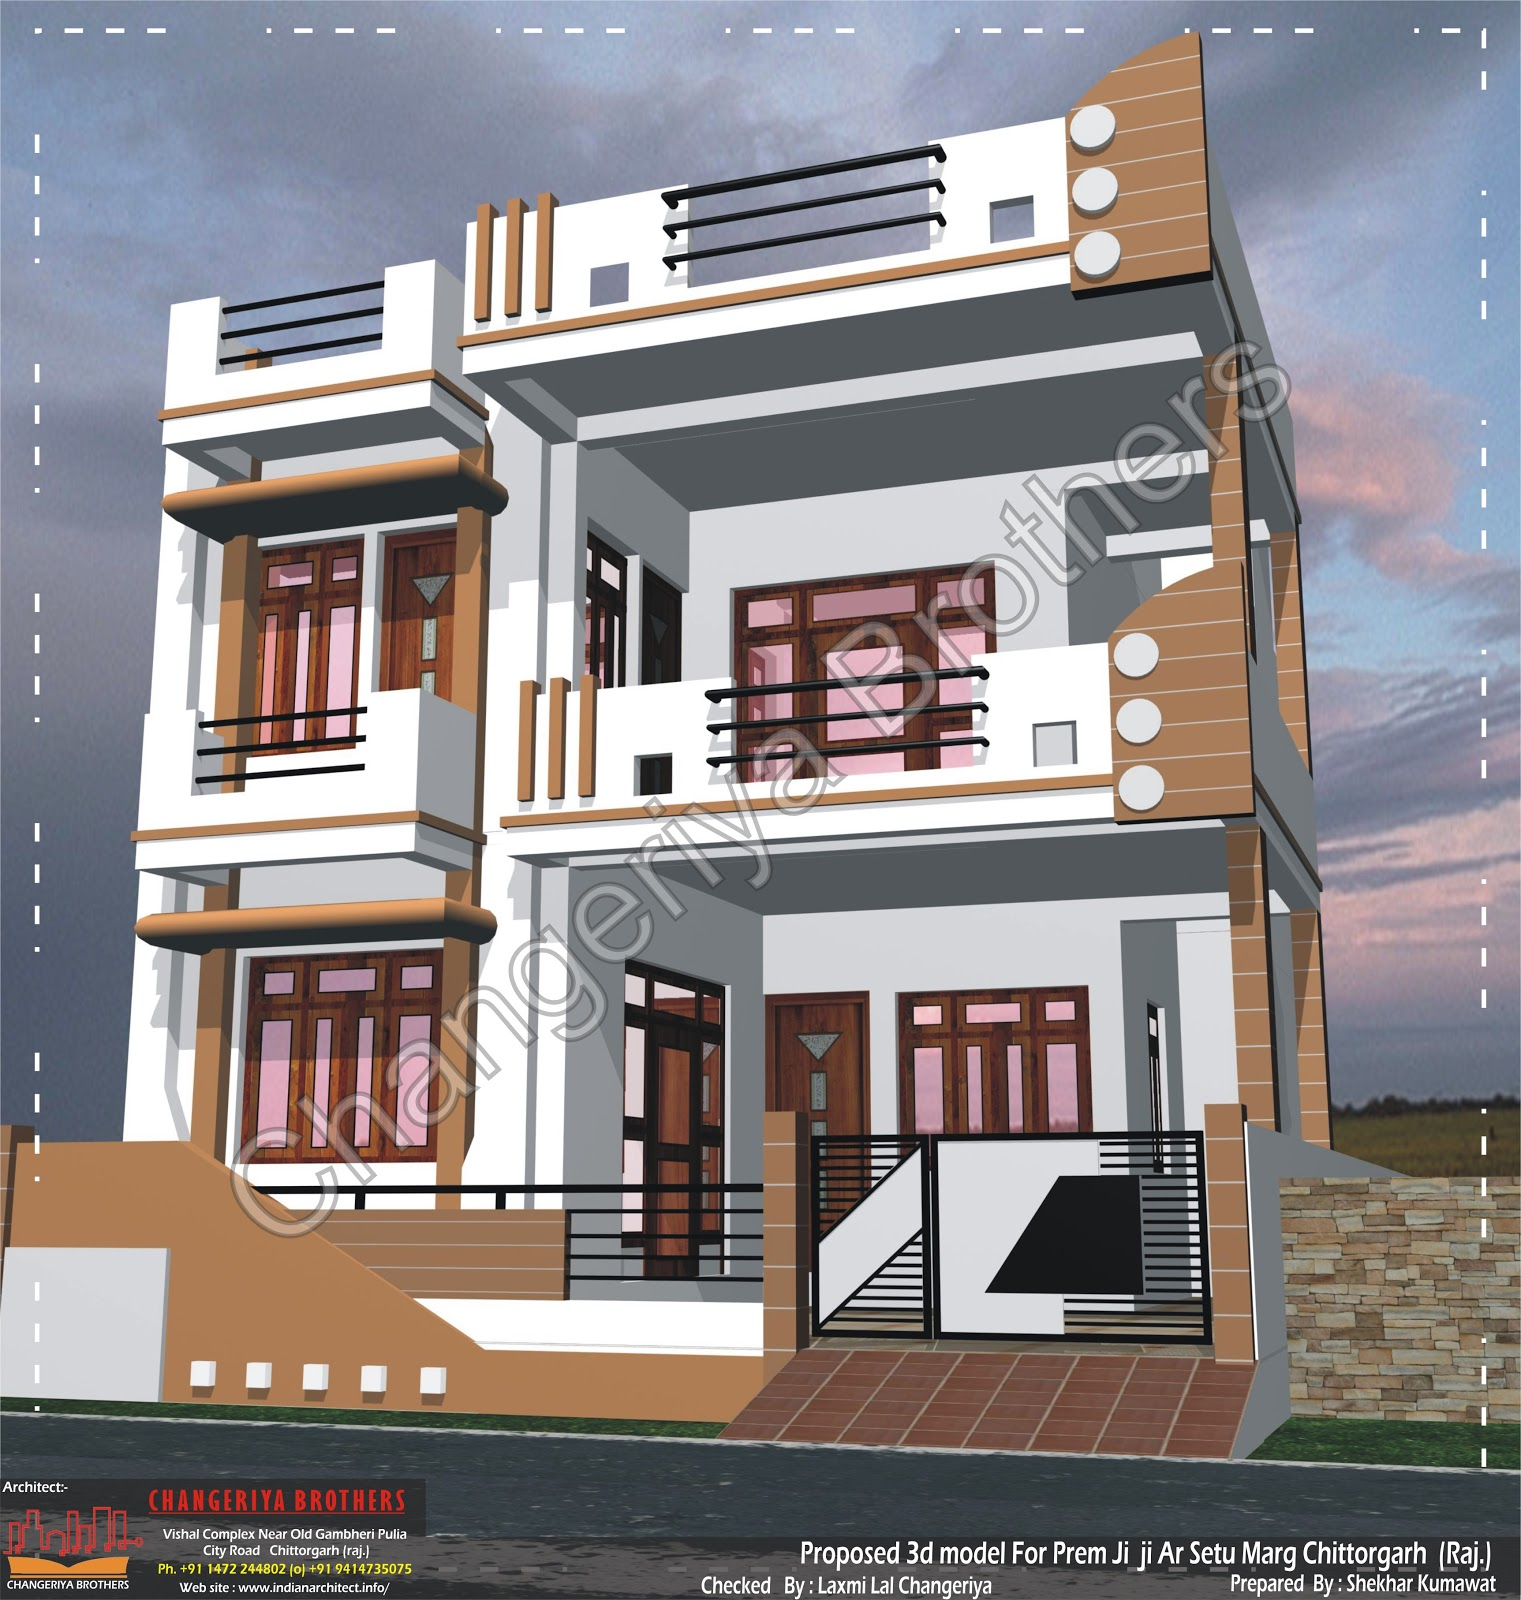 Mr prem ji at chittorgarh 30x60 3d model and project work for Decorating sites for houses